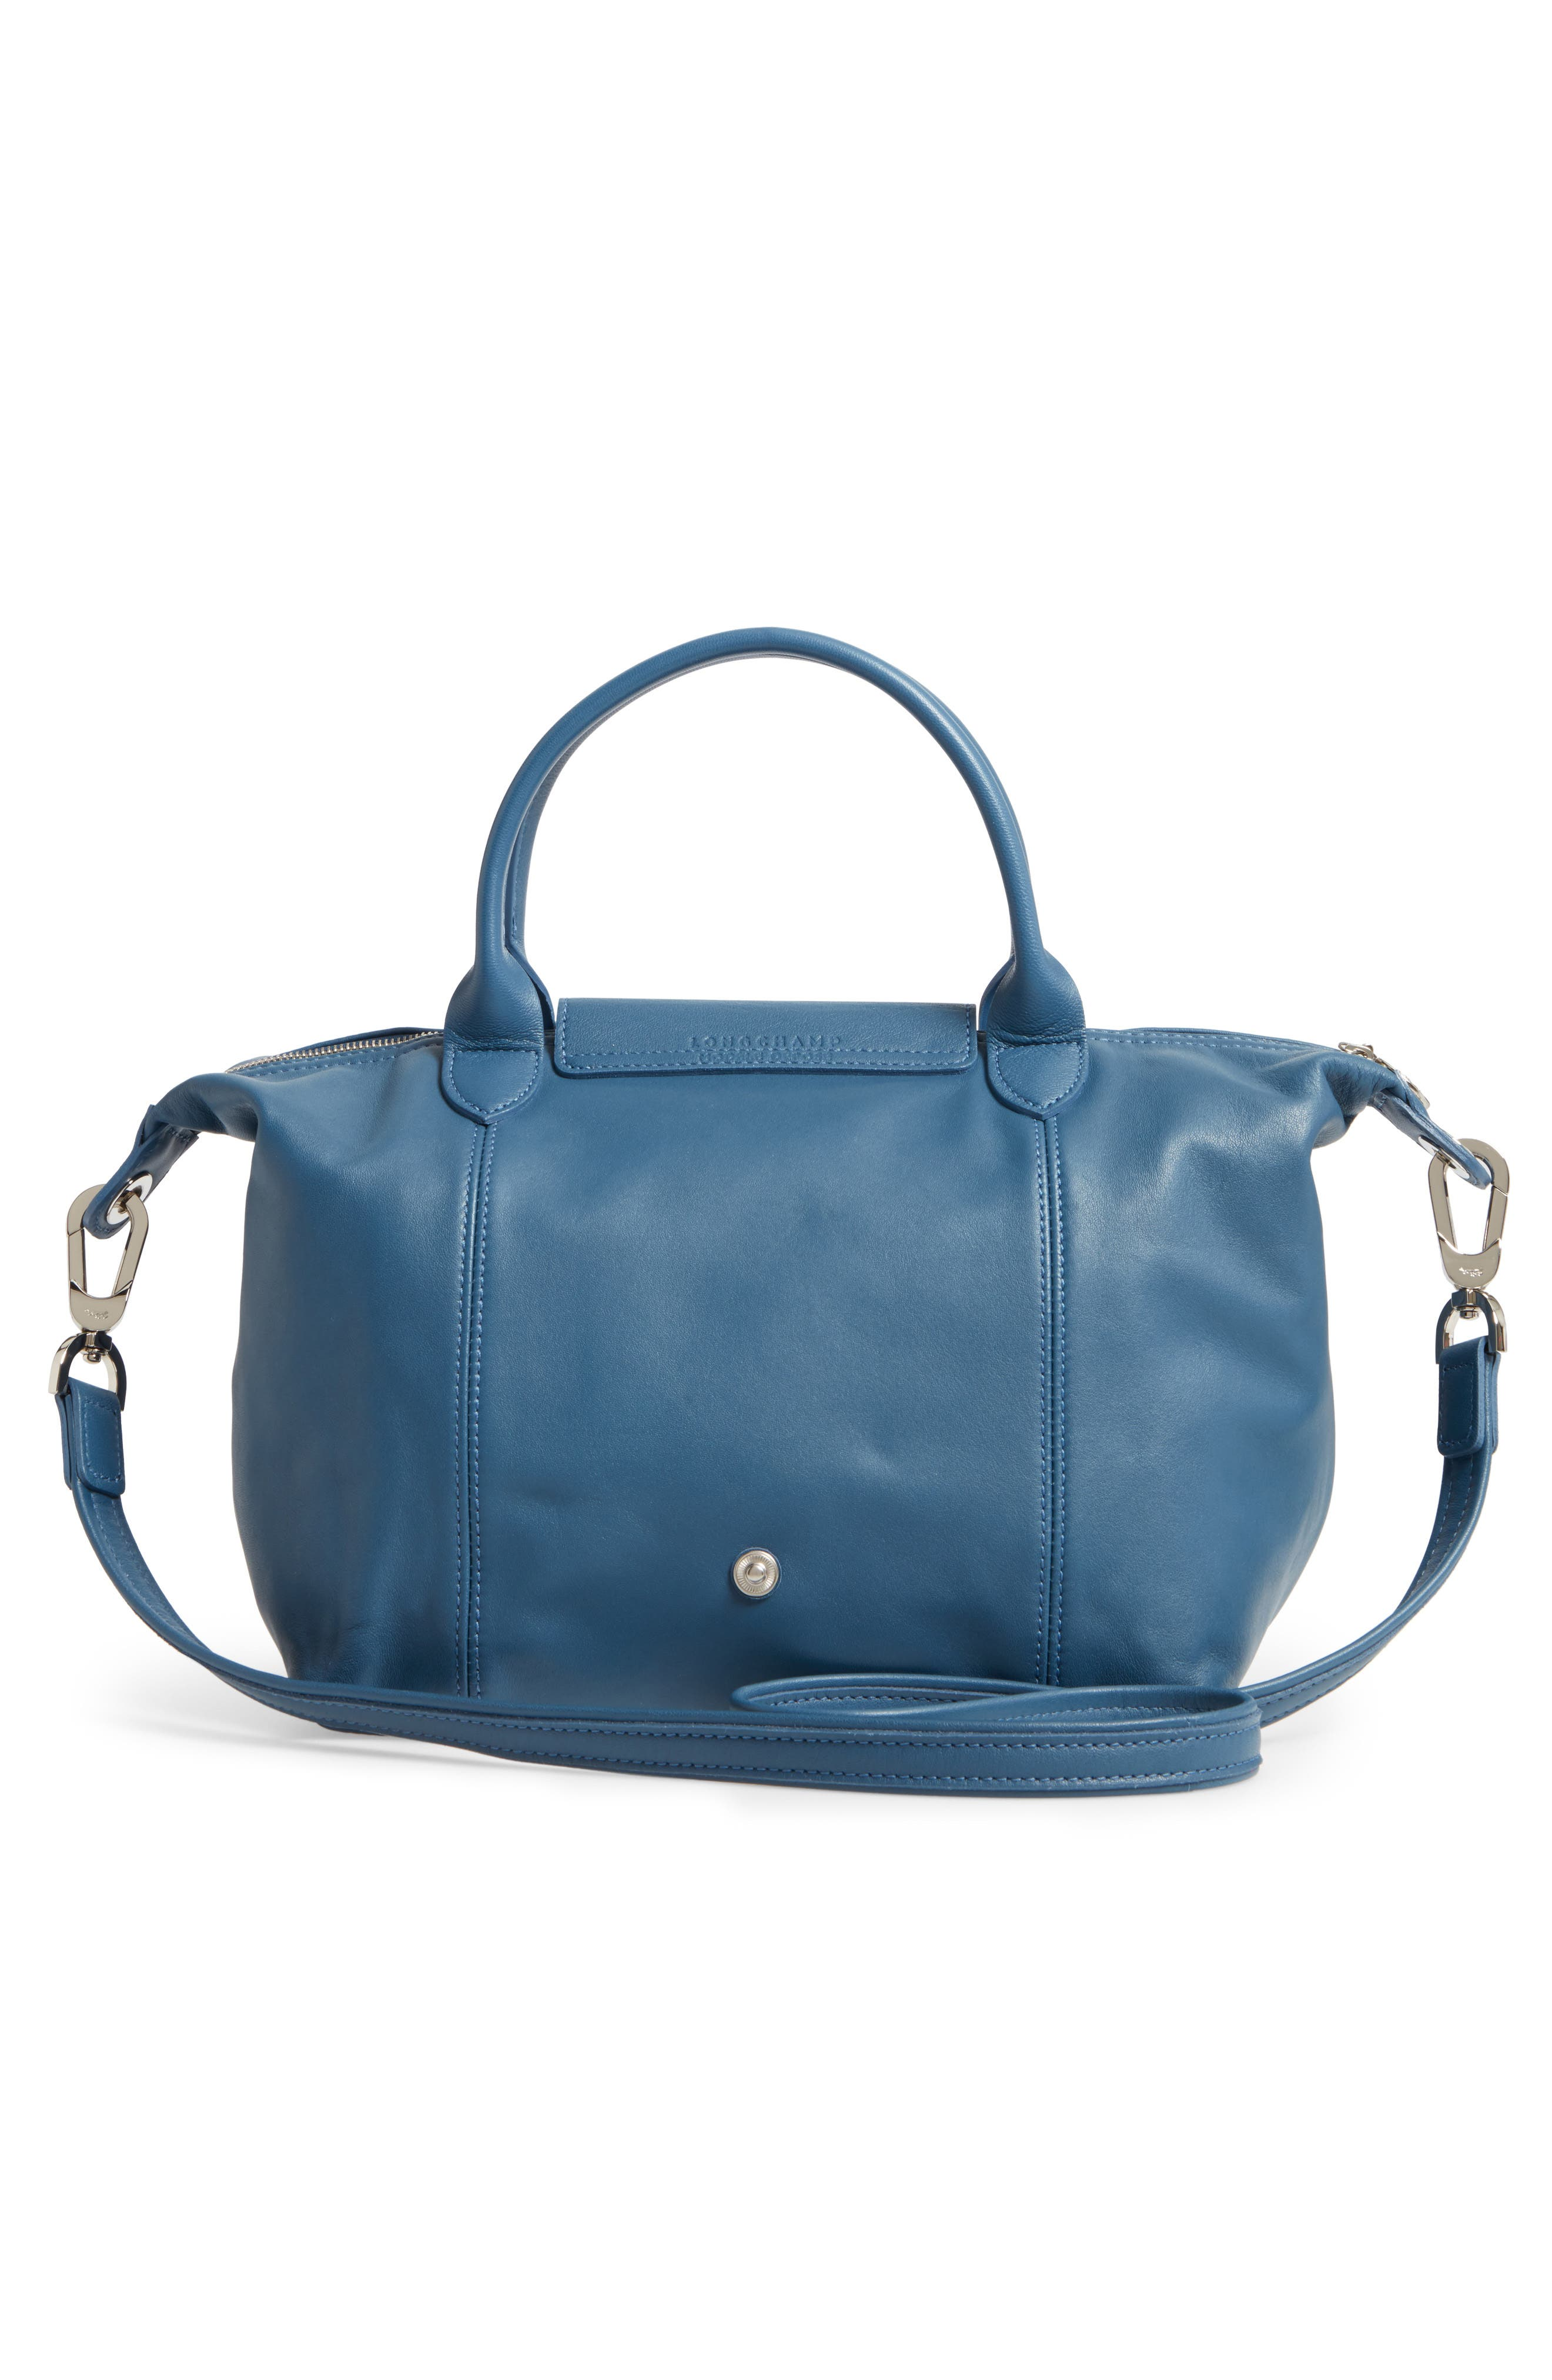 Small 'Le Pliage Cuir' Leather Top Handle Tote,                             Alternate thumbnail 49, color,